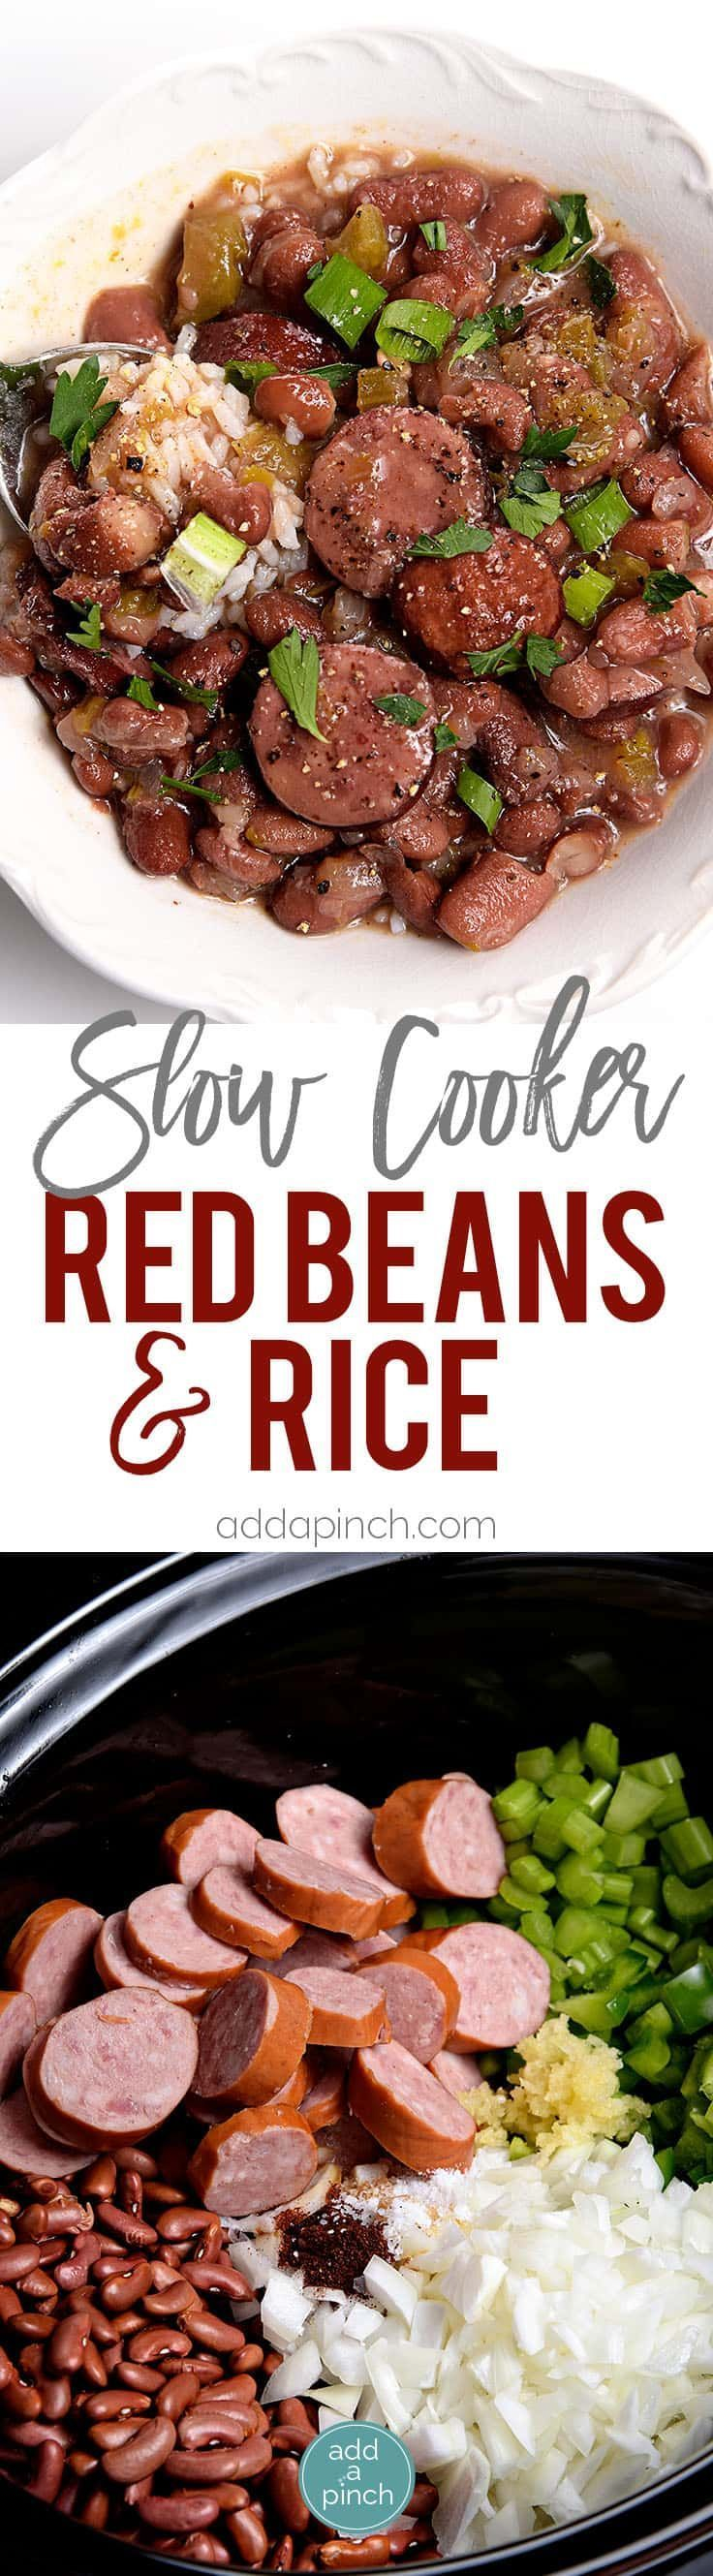 Slow Cooker Red Beans and Rice Recipe - next time use less water. Substitutions-soaked beans over night in salted water. bacon added. Didn't use green peppers. Added onion powder instead of onions. And three chicken bouillon cubes.